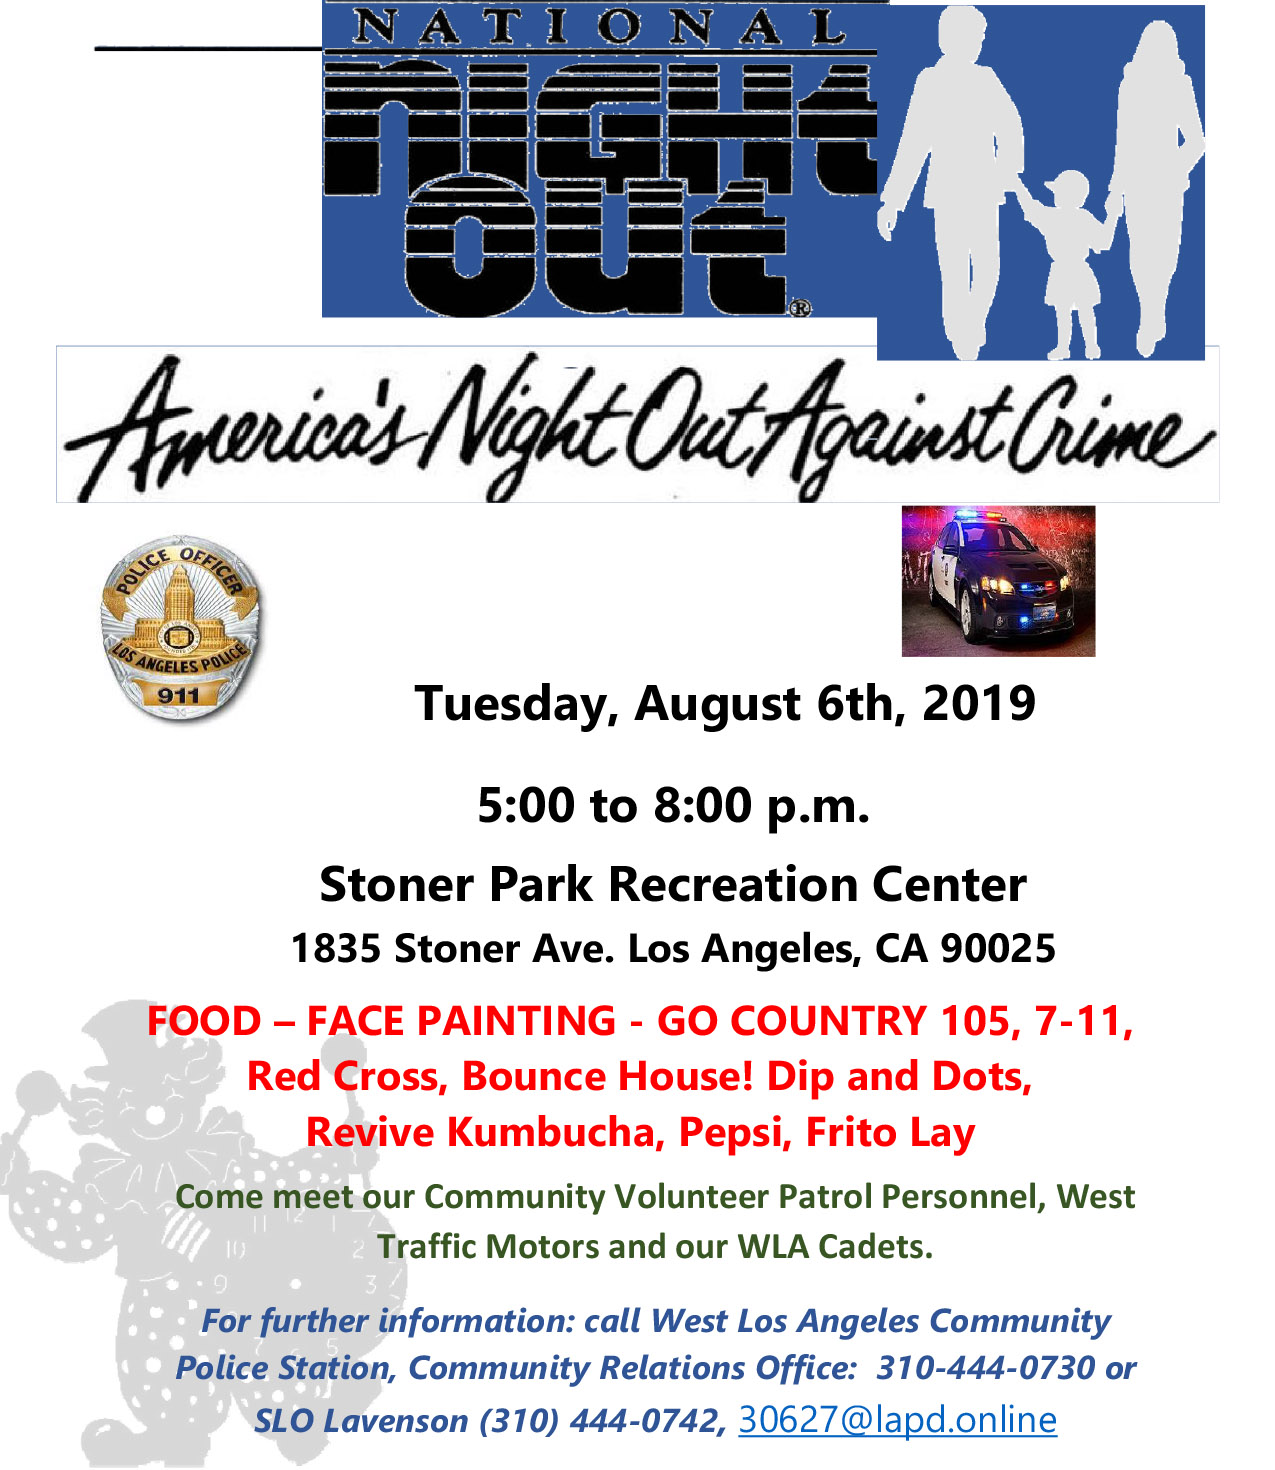 National Night Out Revised 2019-1.jpg